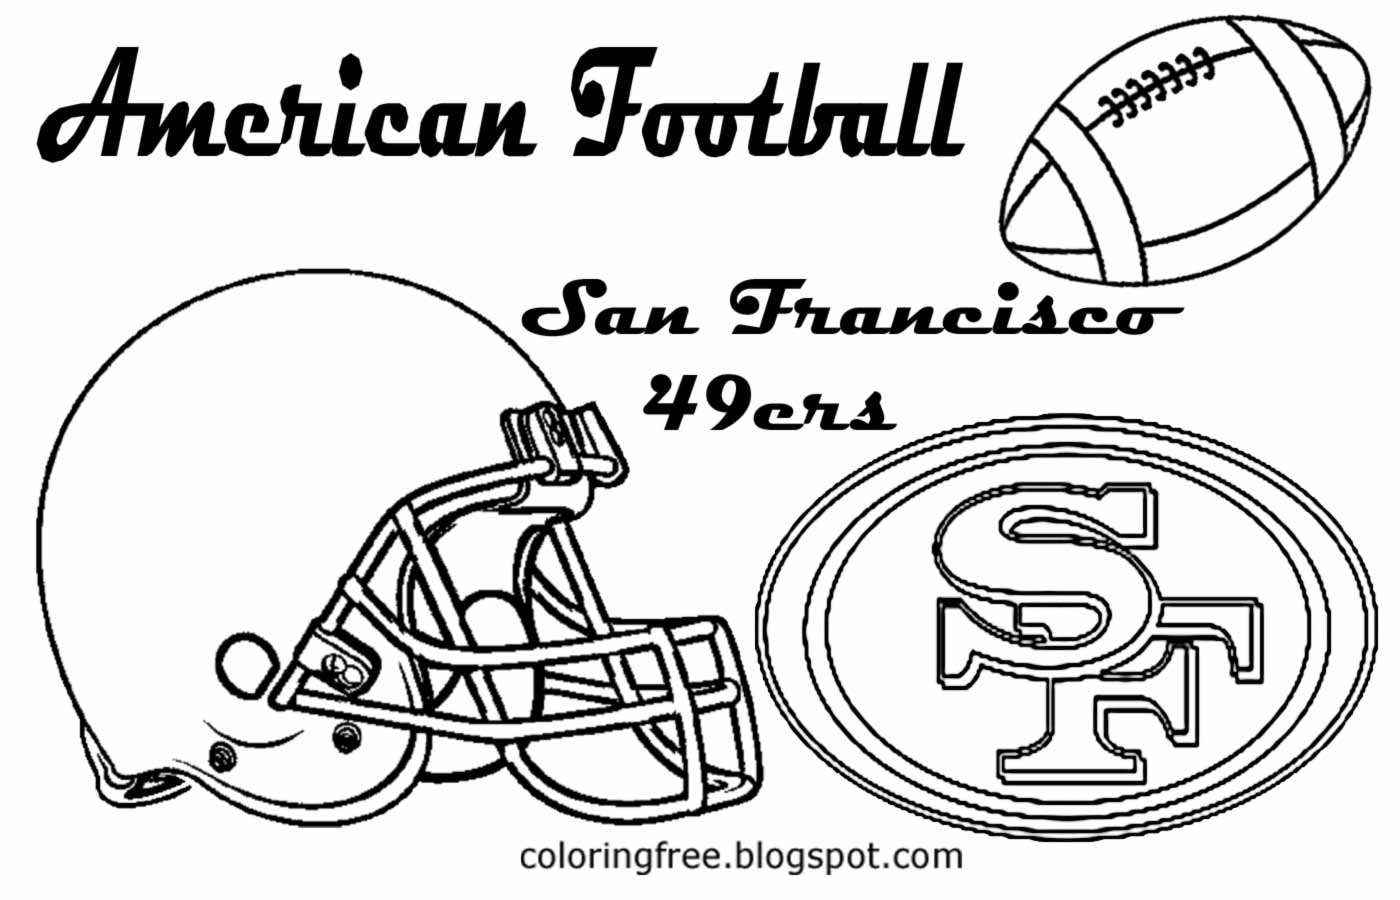 49ers Logo Drawing at GetDrawings.com | Free for personal use 49ers ...